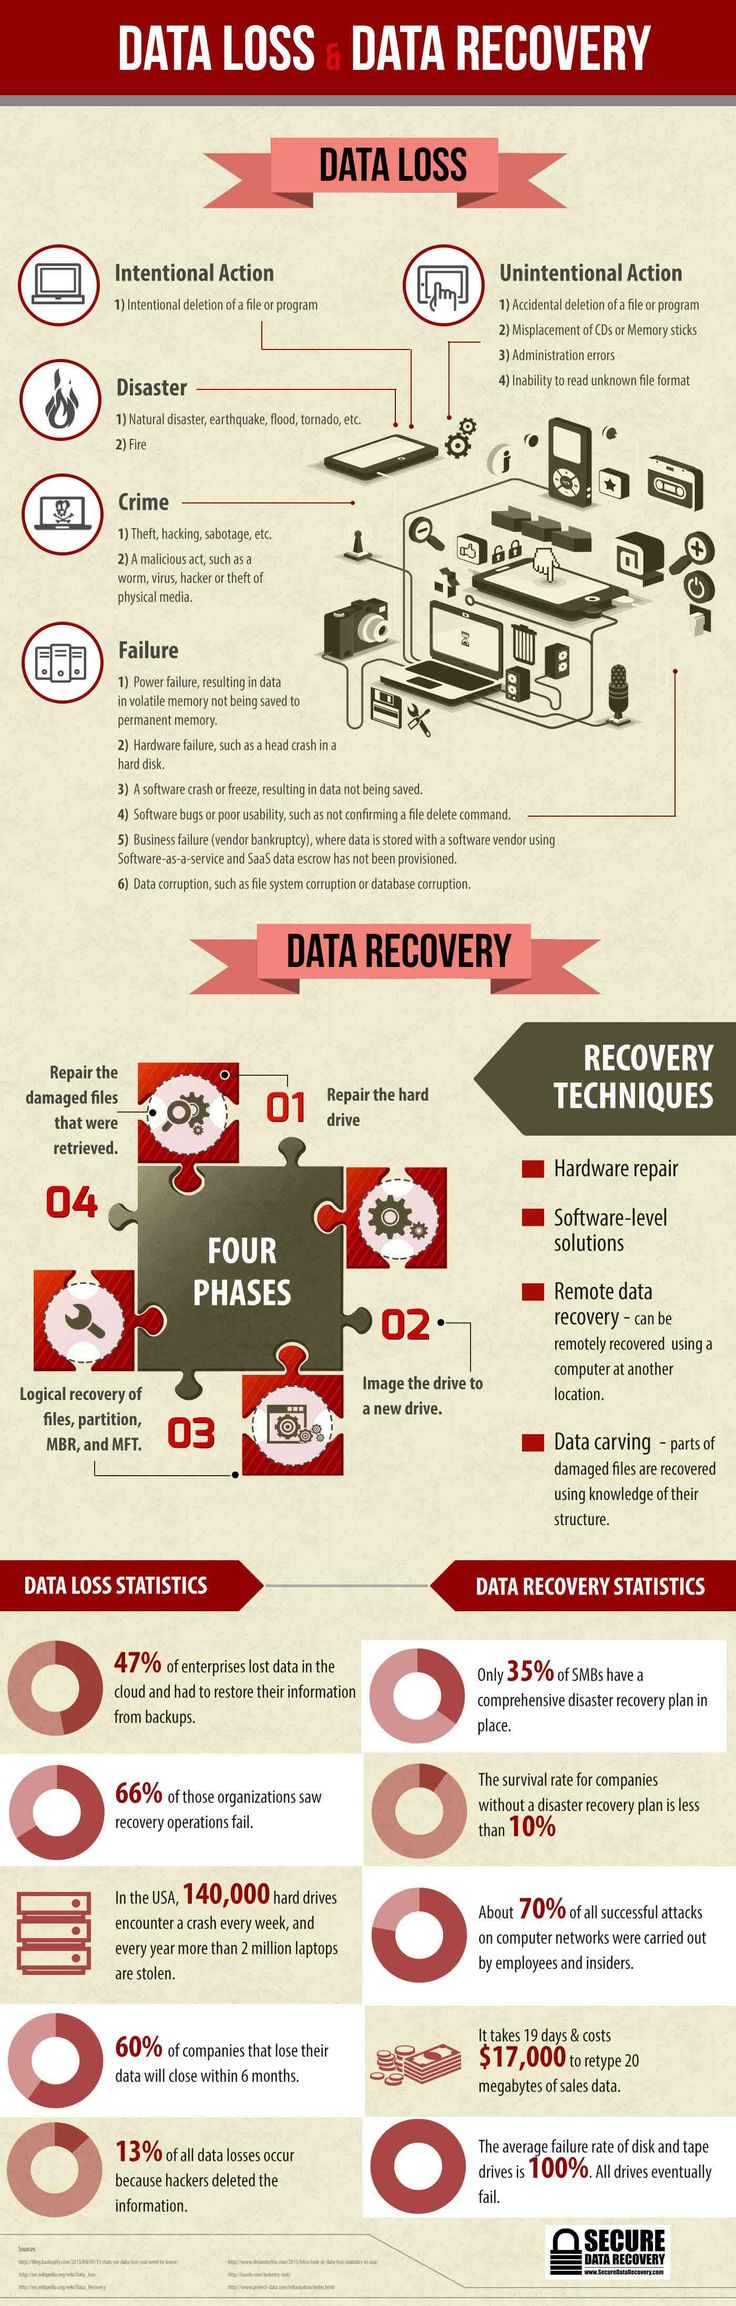 Data Loss and Data Recovery #Infographic #Technology